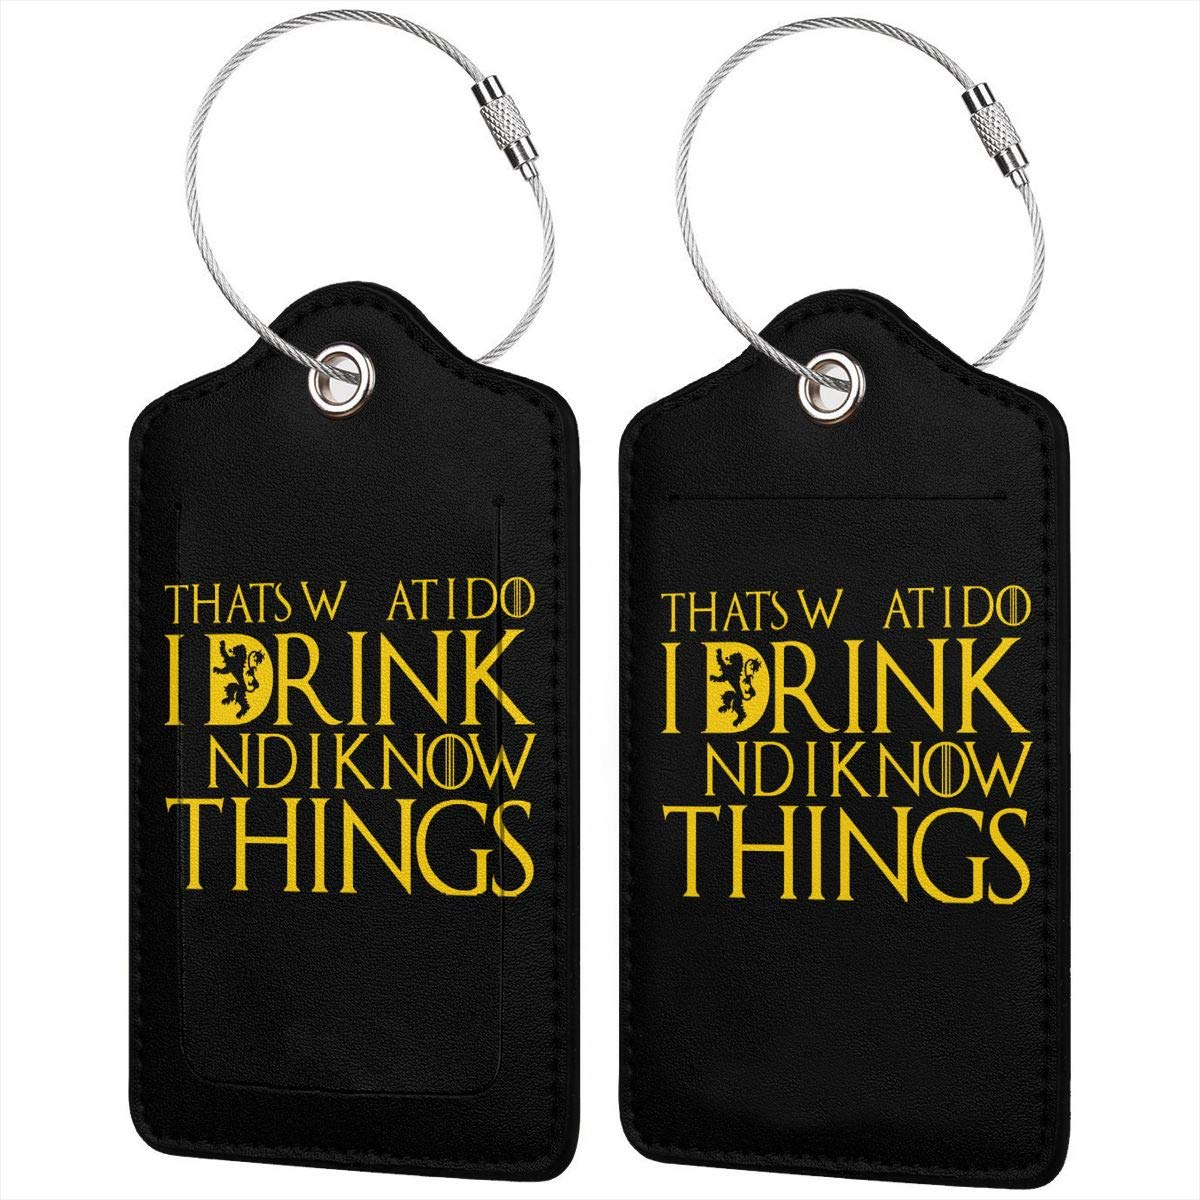 I Drink And Know Things Leather Luggage Tag Travel ID Label For Baggage Suitcase